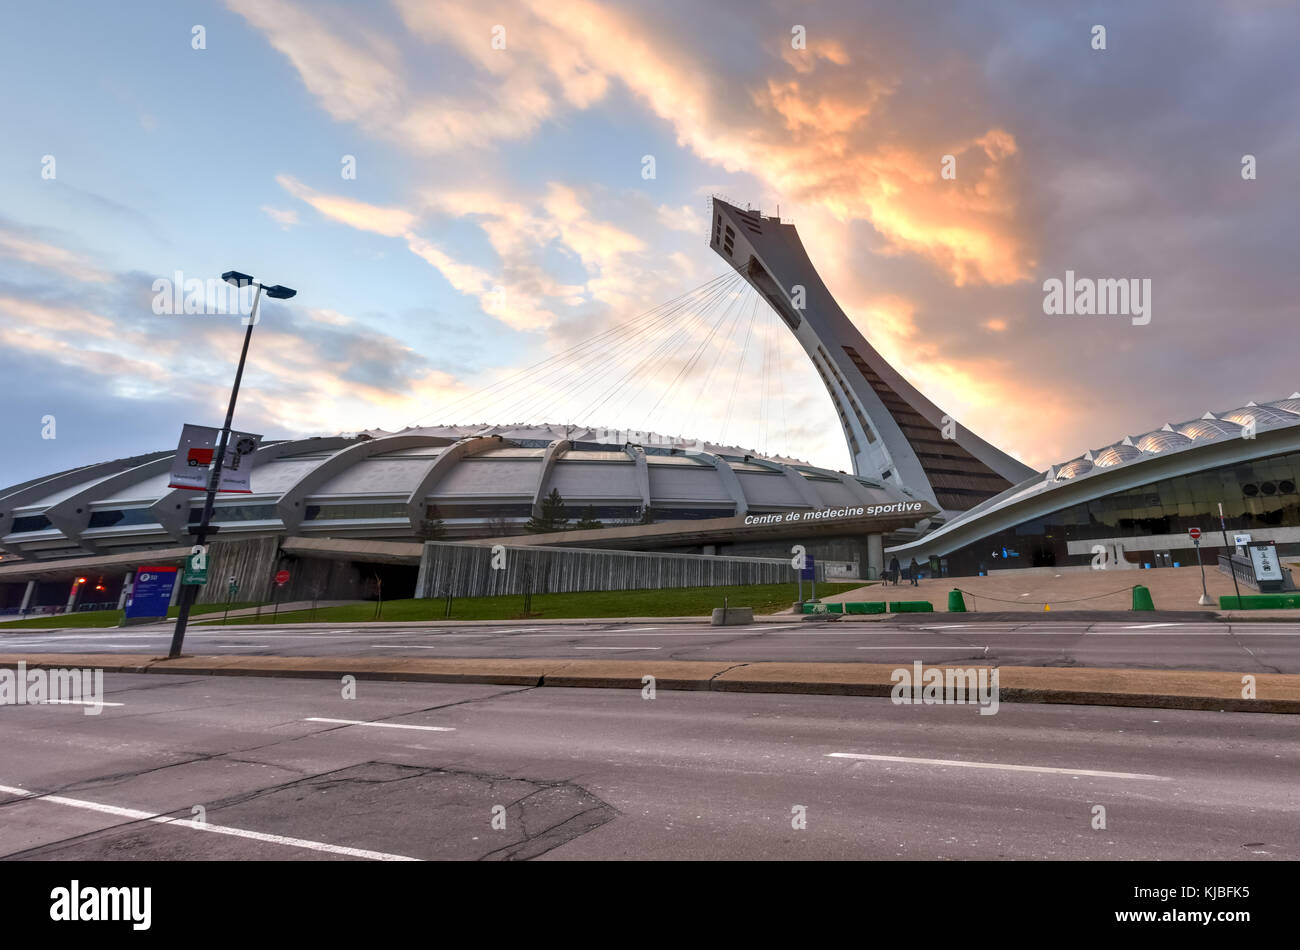 The Montreal Olympic Stadium and tower at sunset. It's the tallest inclined tower in the world.Tour Olympique - Stock Image